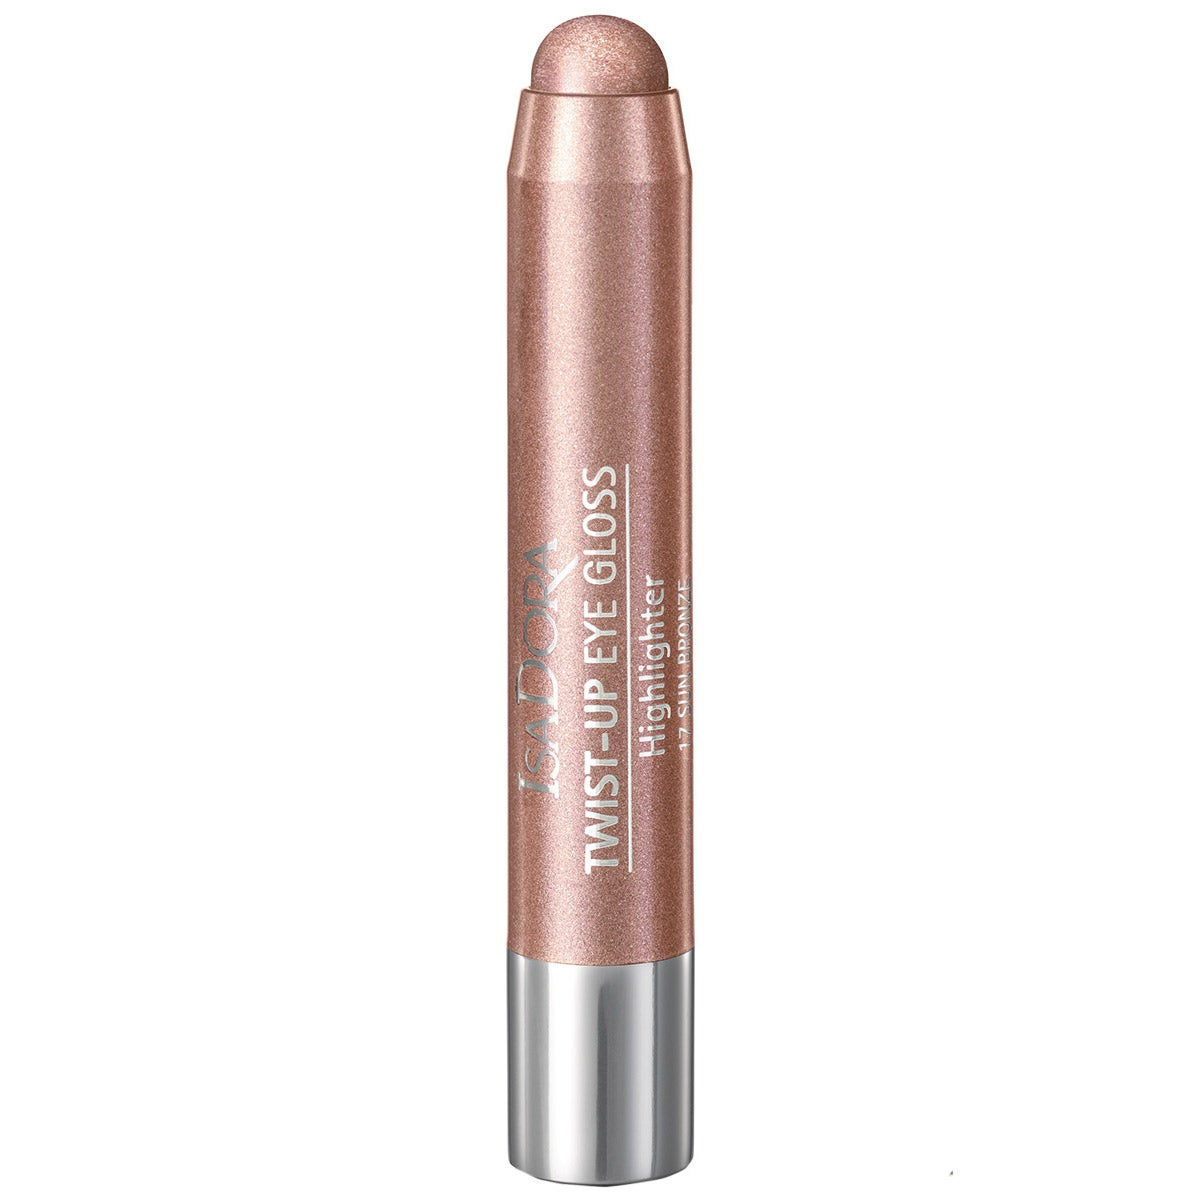 IsaDora Twist-Up Eye Gloss Highlighter